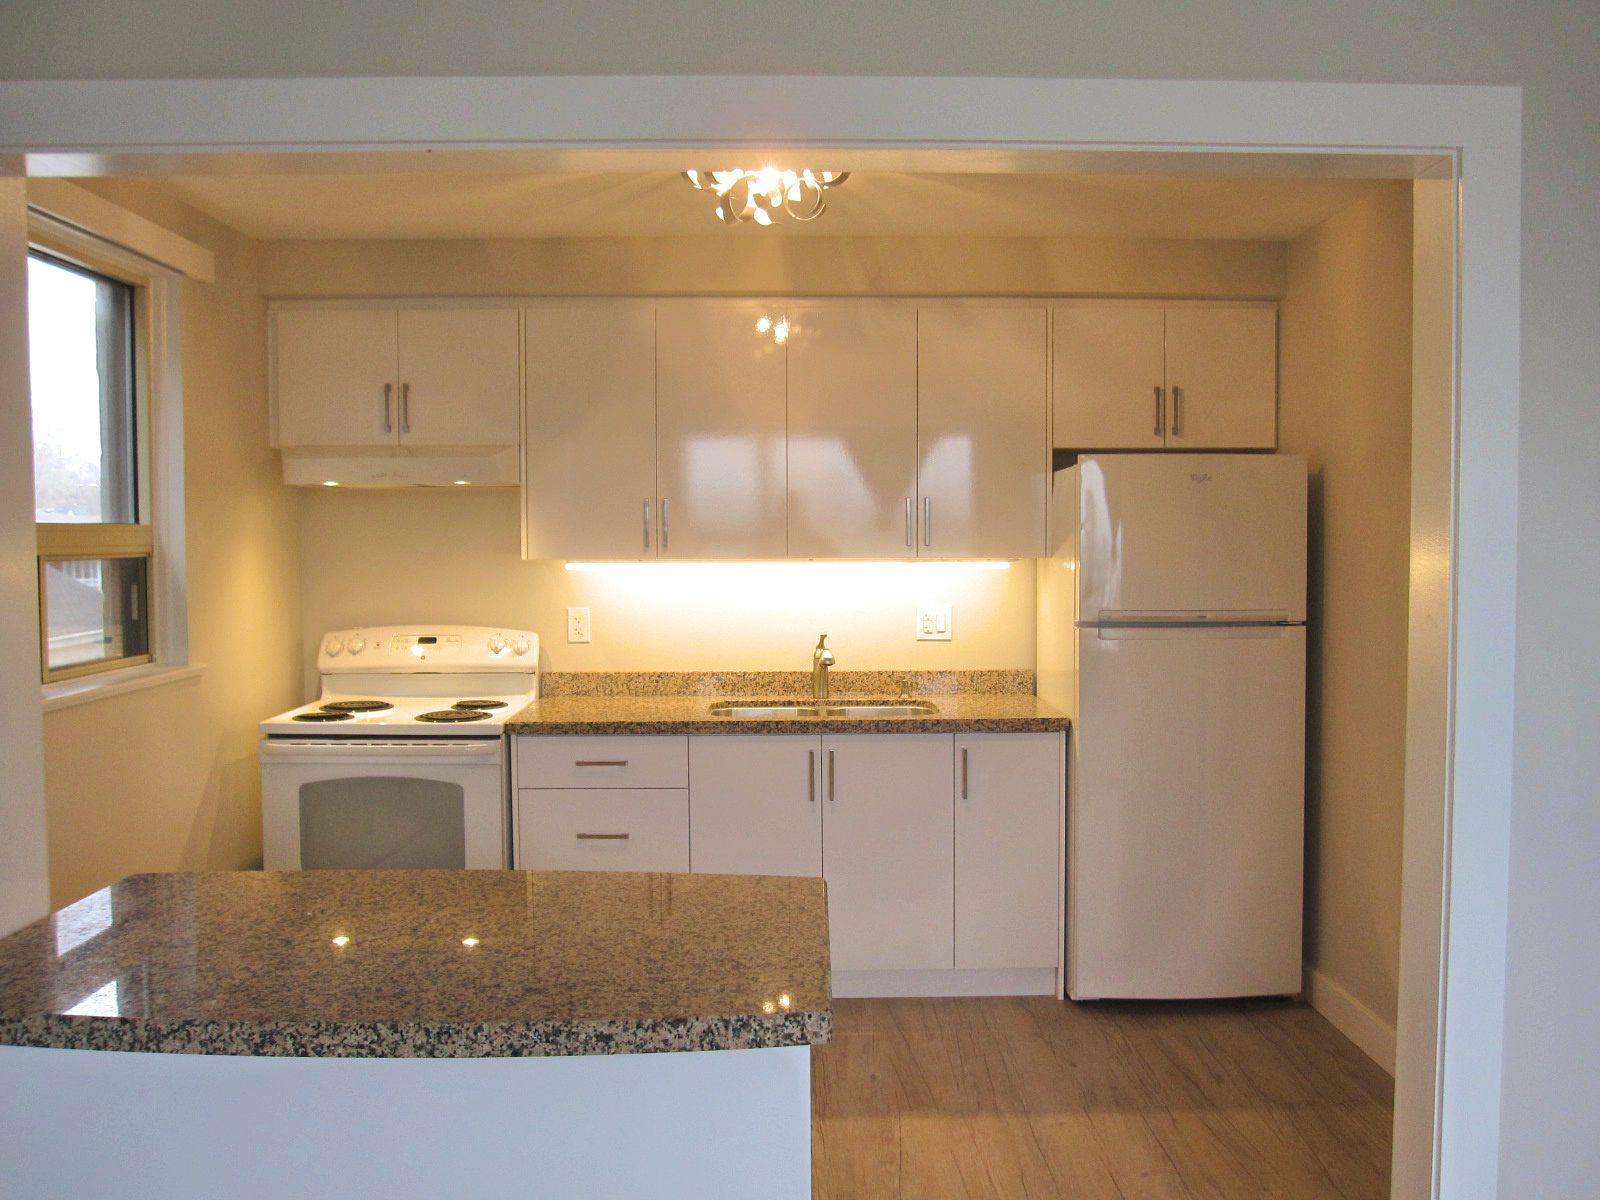 1095 Lakeshore Rd. E – 2 Bedroom Lakeview Inspiration at your Doorstep!